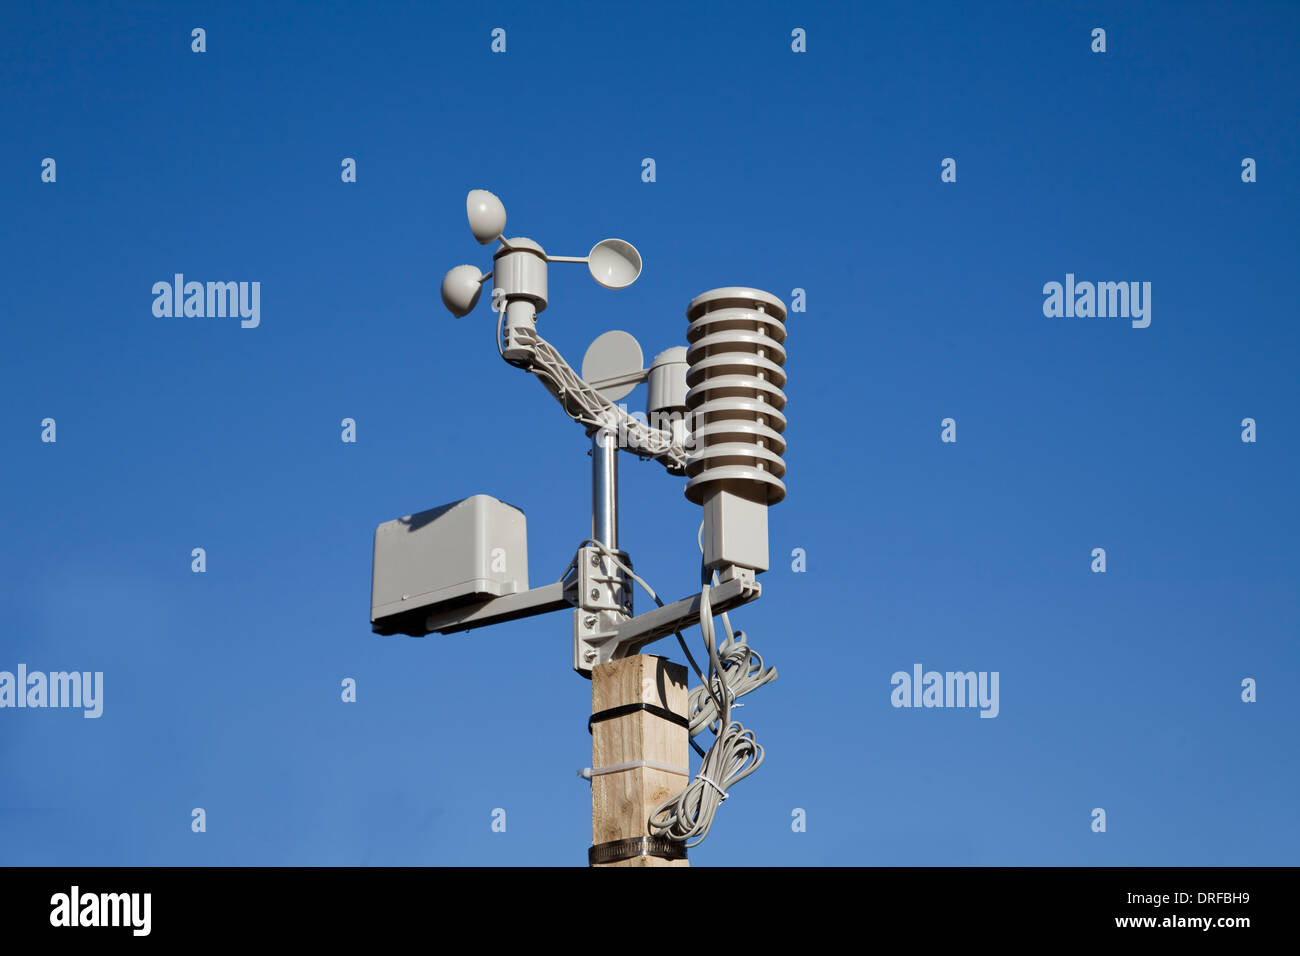 Professional weather station for domestic use - Stock Image